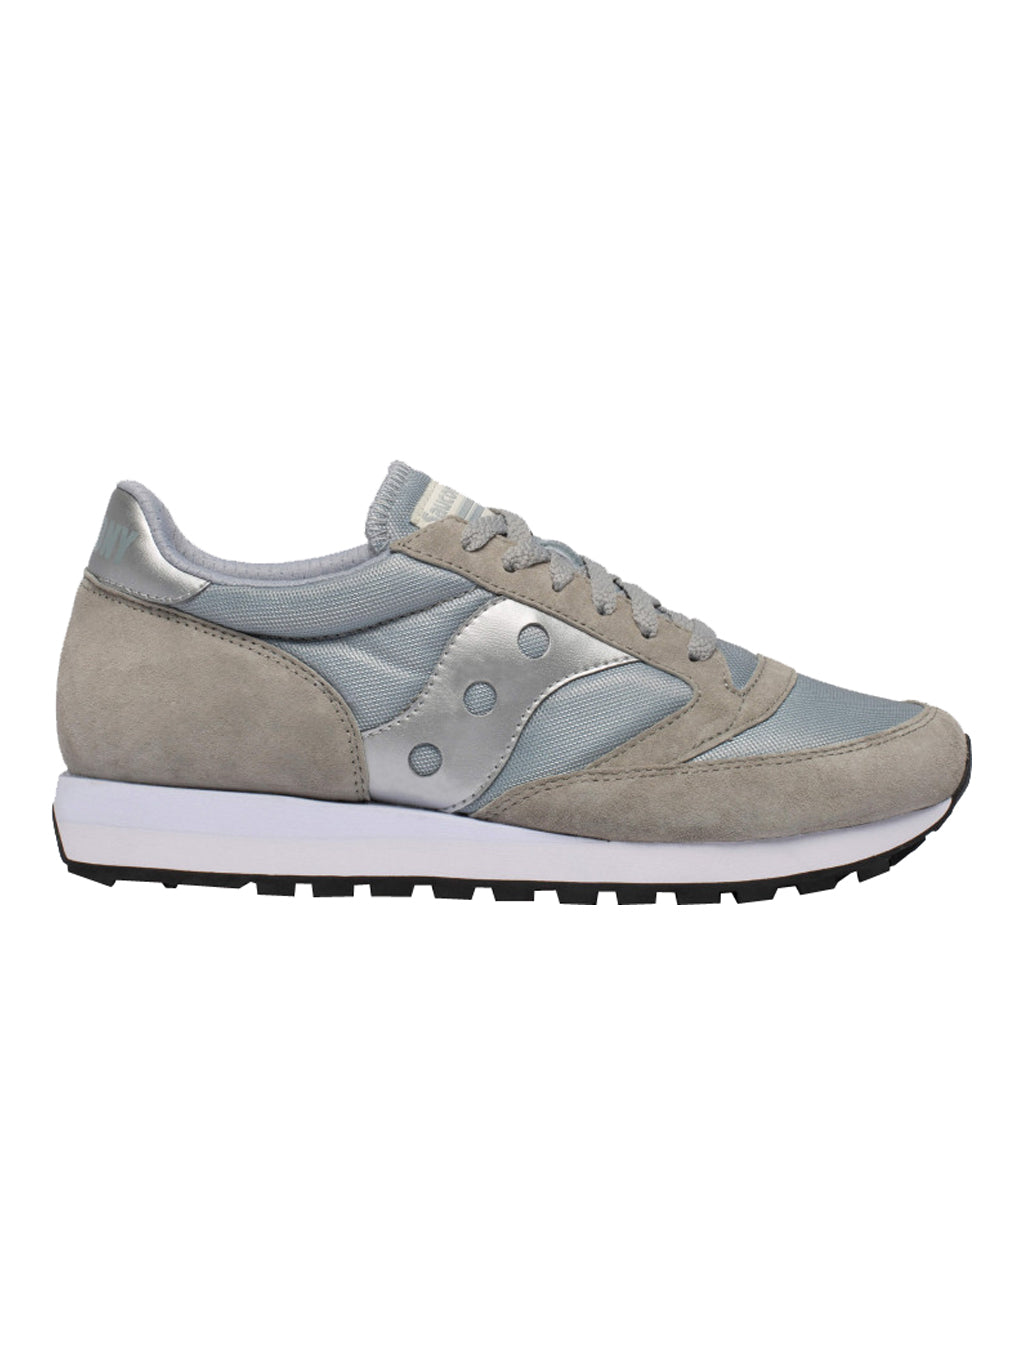 Grey & Silver Saucony Jazz 81 Sneakers